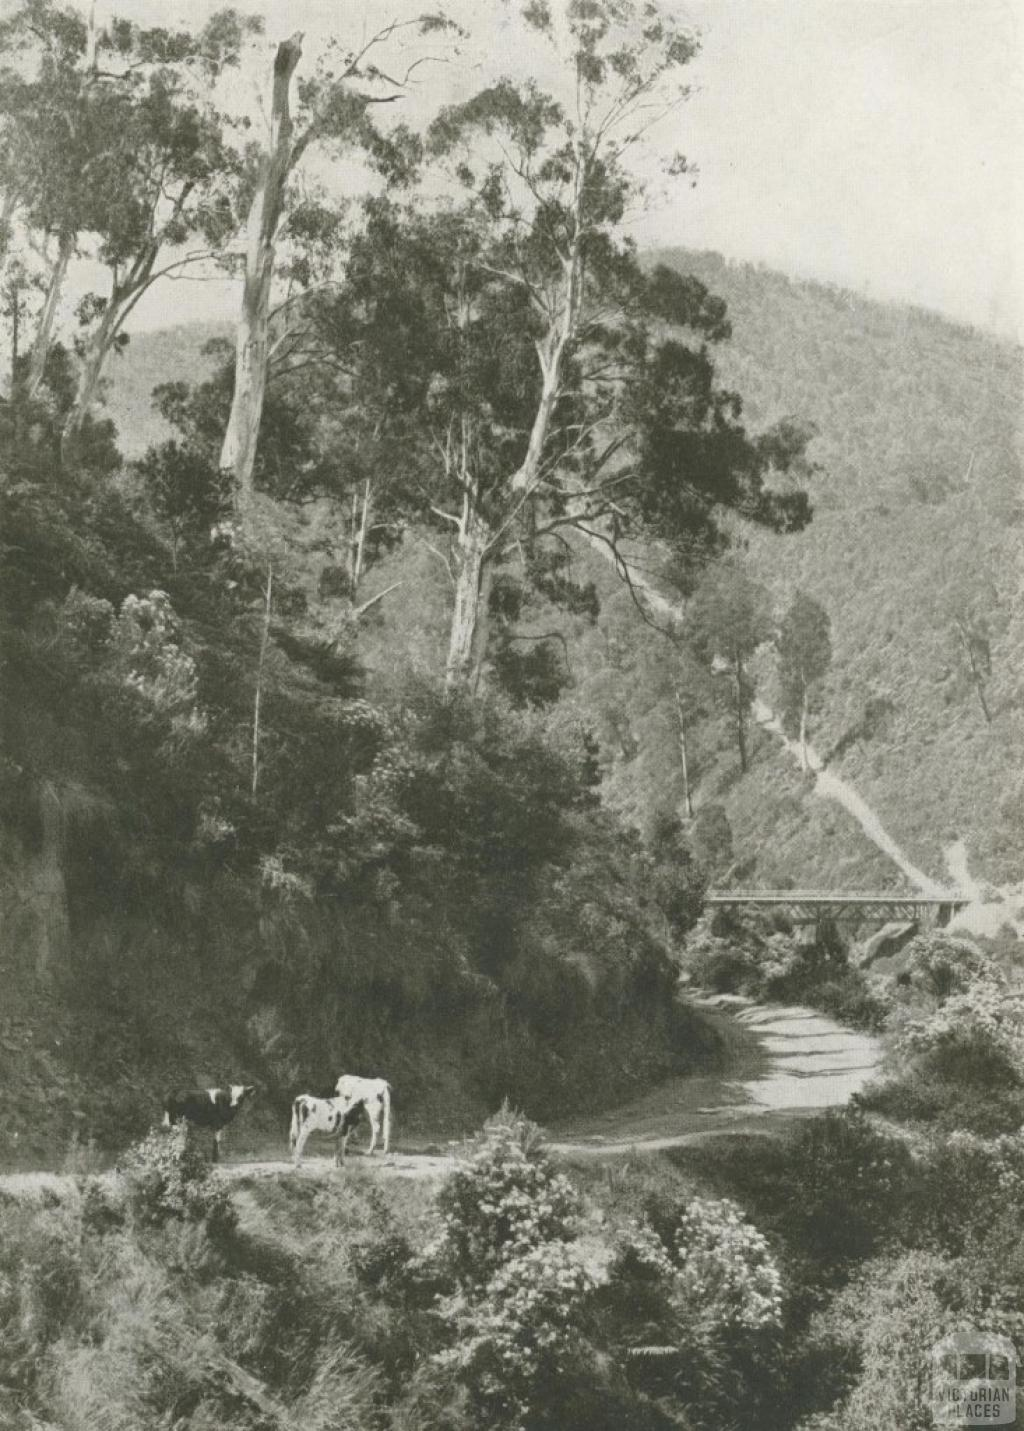 A Mountain Road, Walhalla, c1910